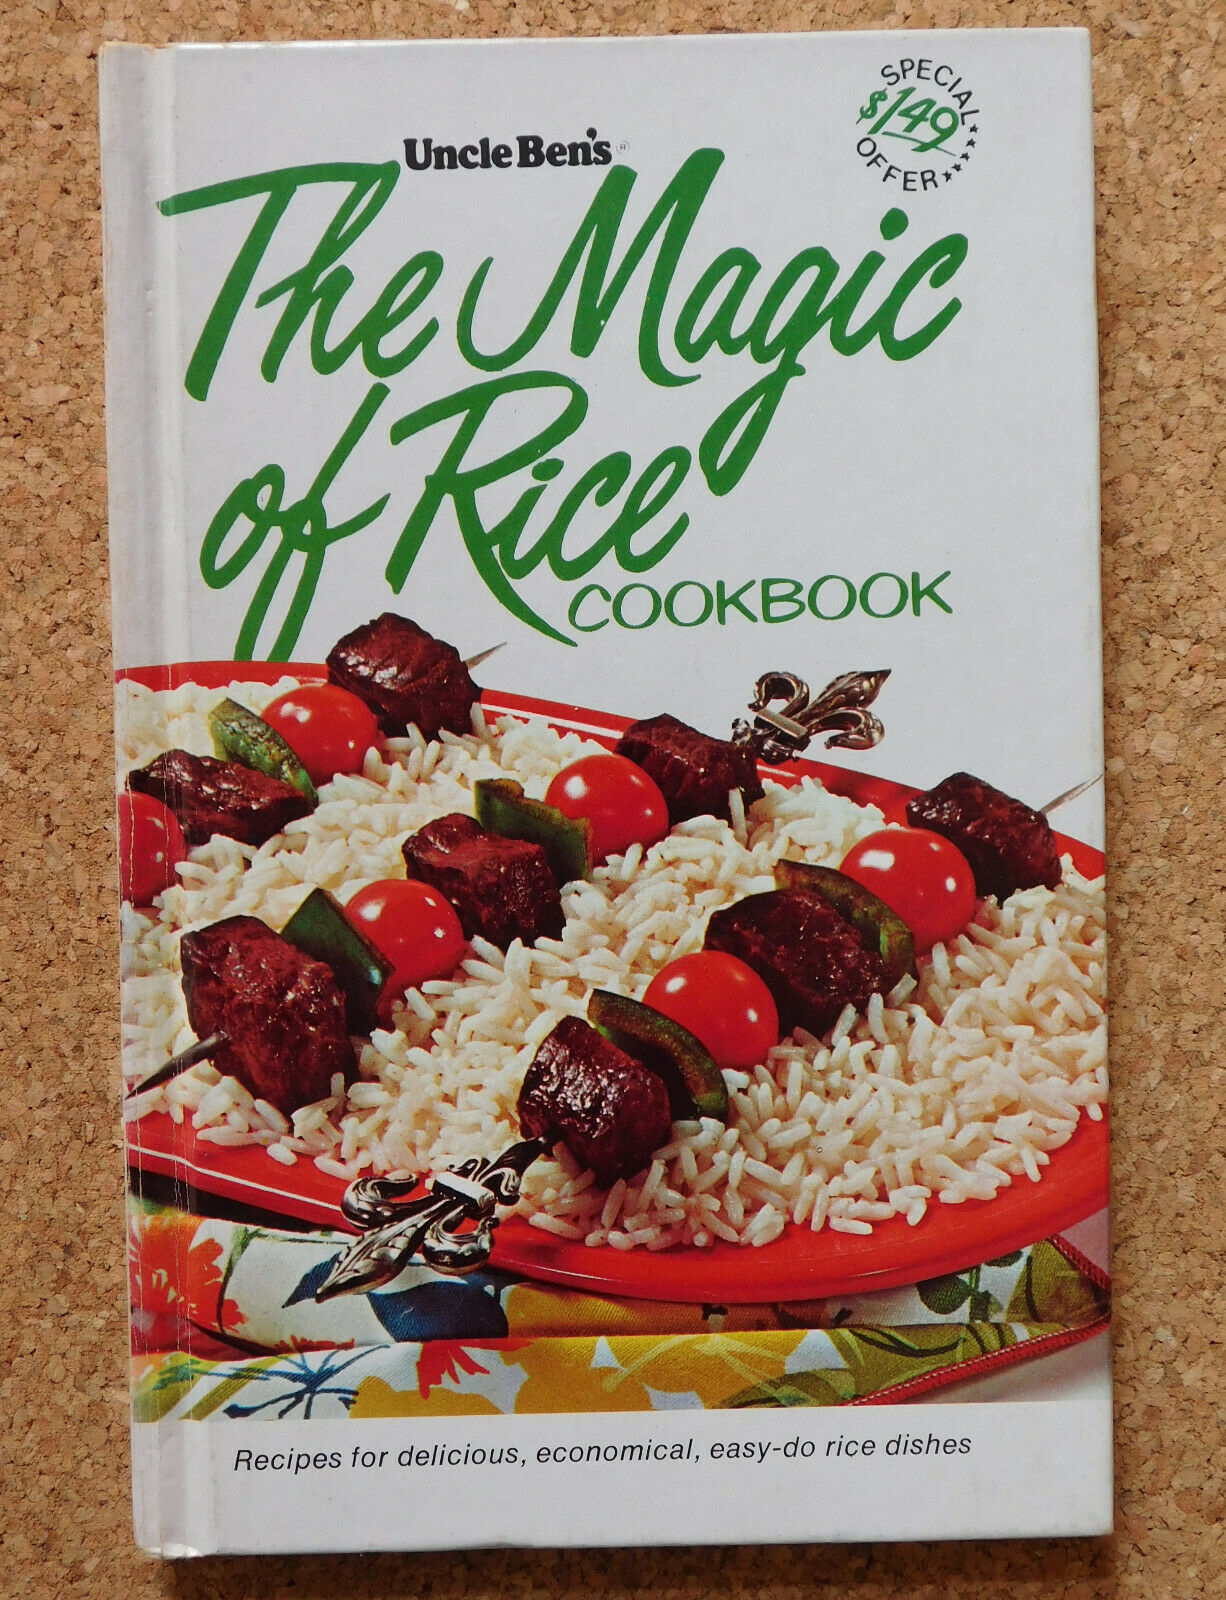 The Magic of Rice Uncle Ben's Cook Book American recipes vintage 1960s easy meal